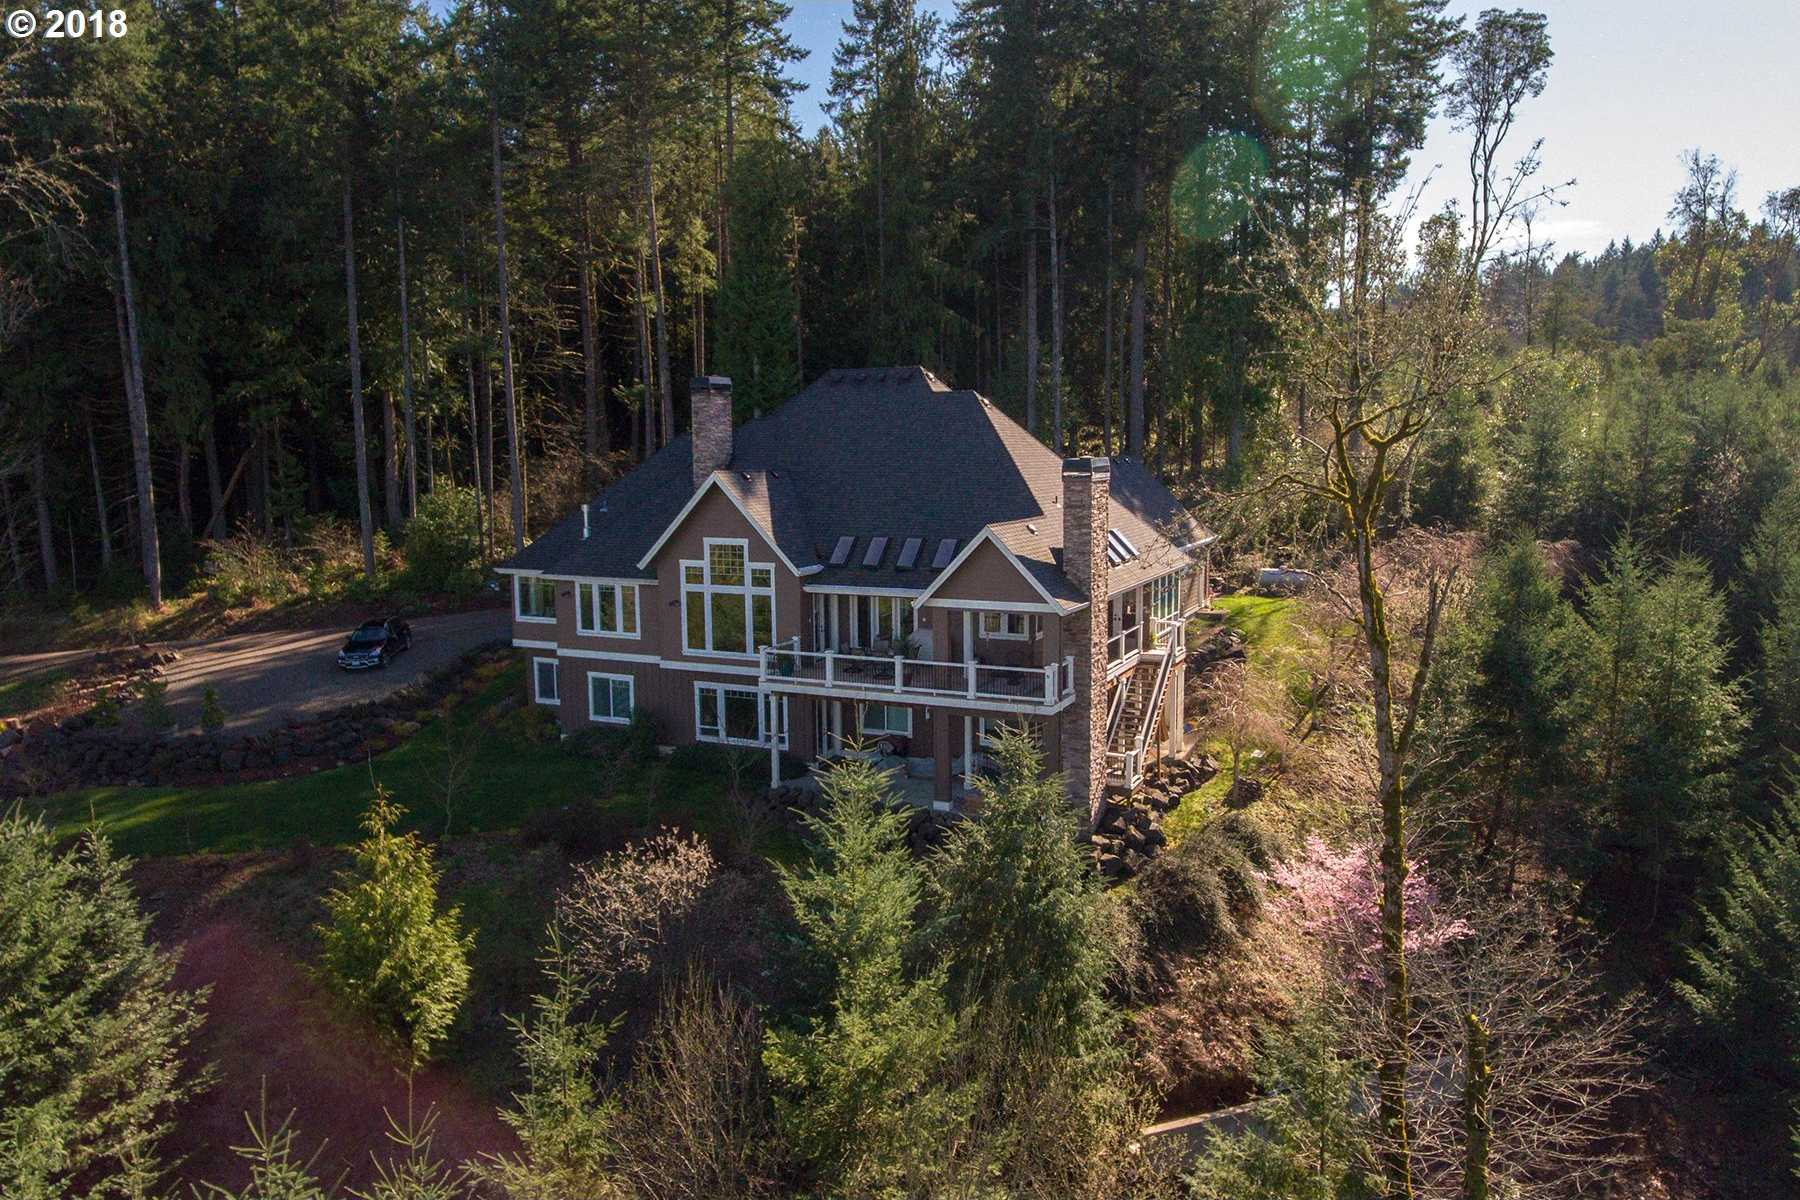 $1,300,000 - 4Br/4Ba -  for Sale in Laurel / Bald Peak, Hillsboro